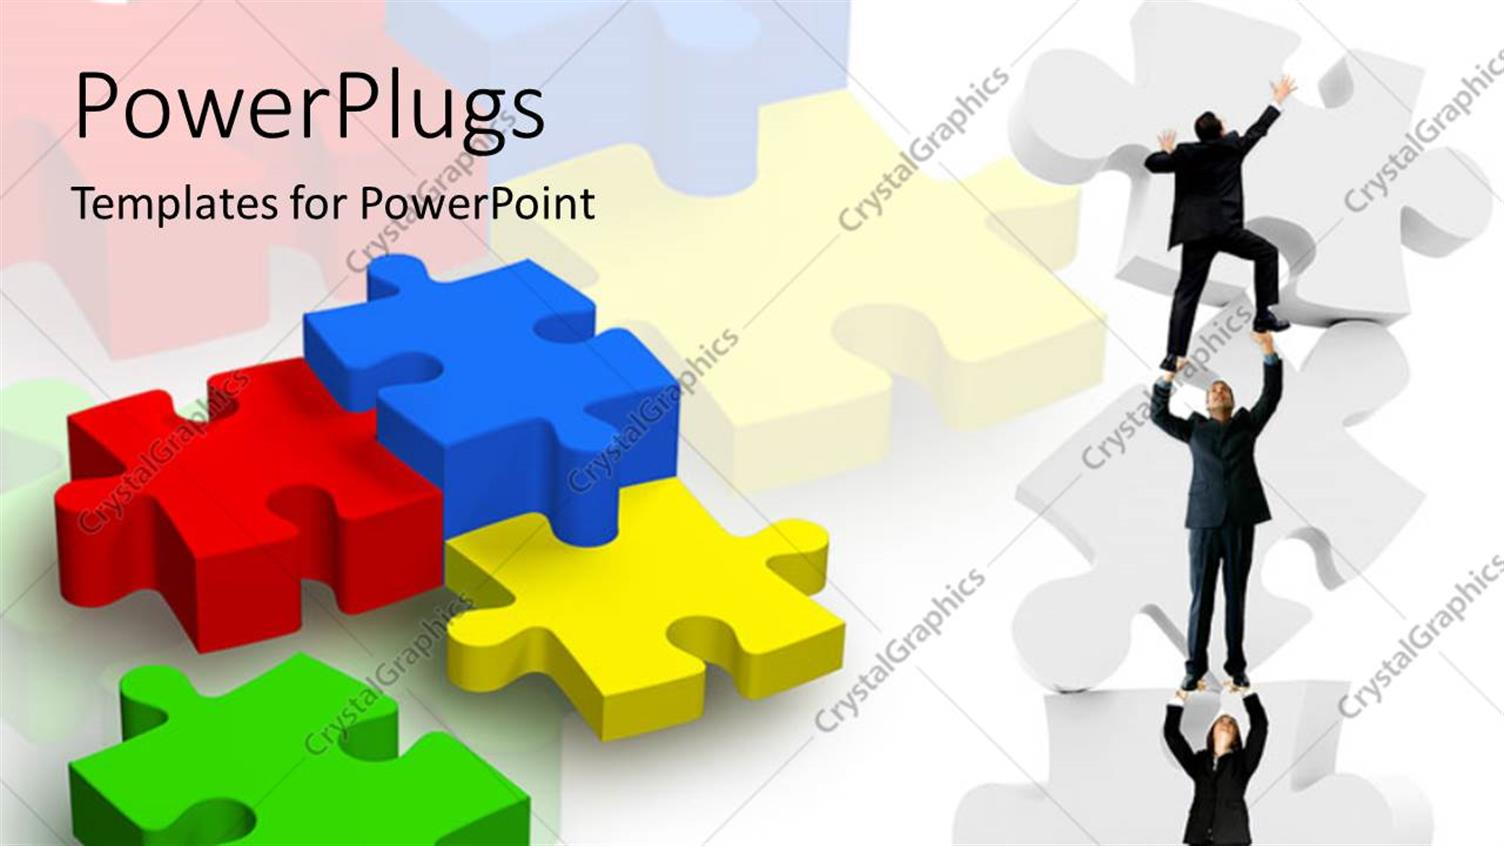 PowerPoint Template Displaying Various Puzzle Pieces with a Team of People